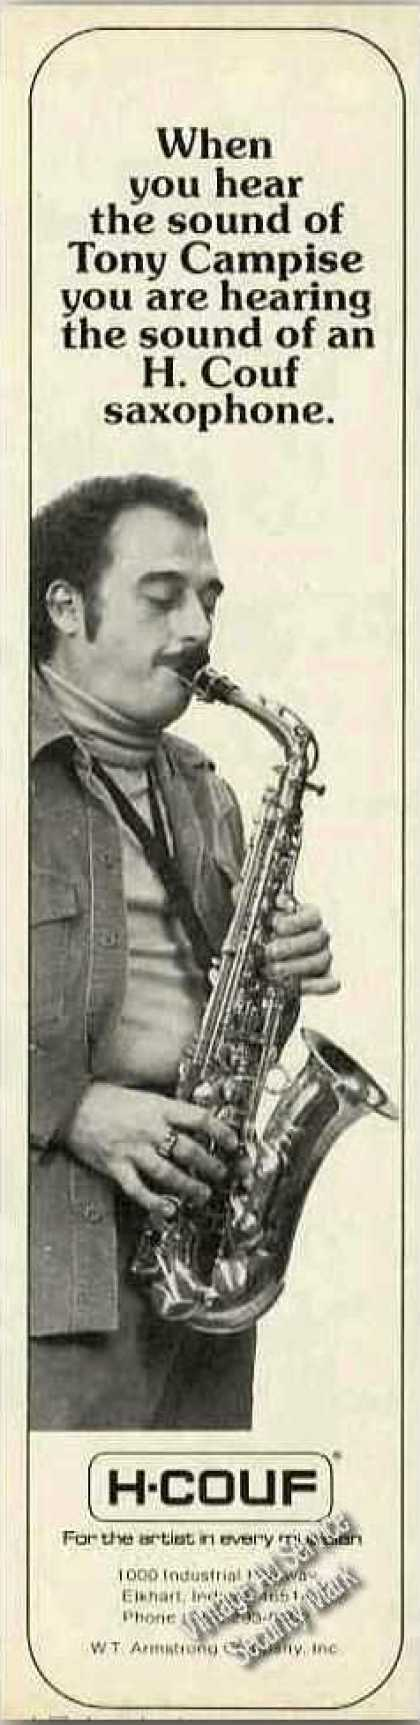 Tony Campise Photo H. Couf Saxophone (1979)